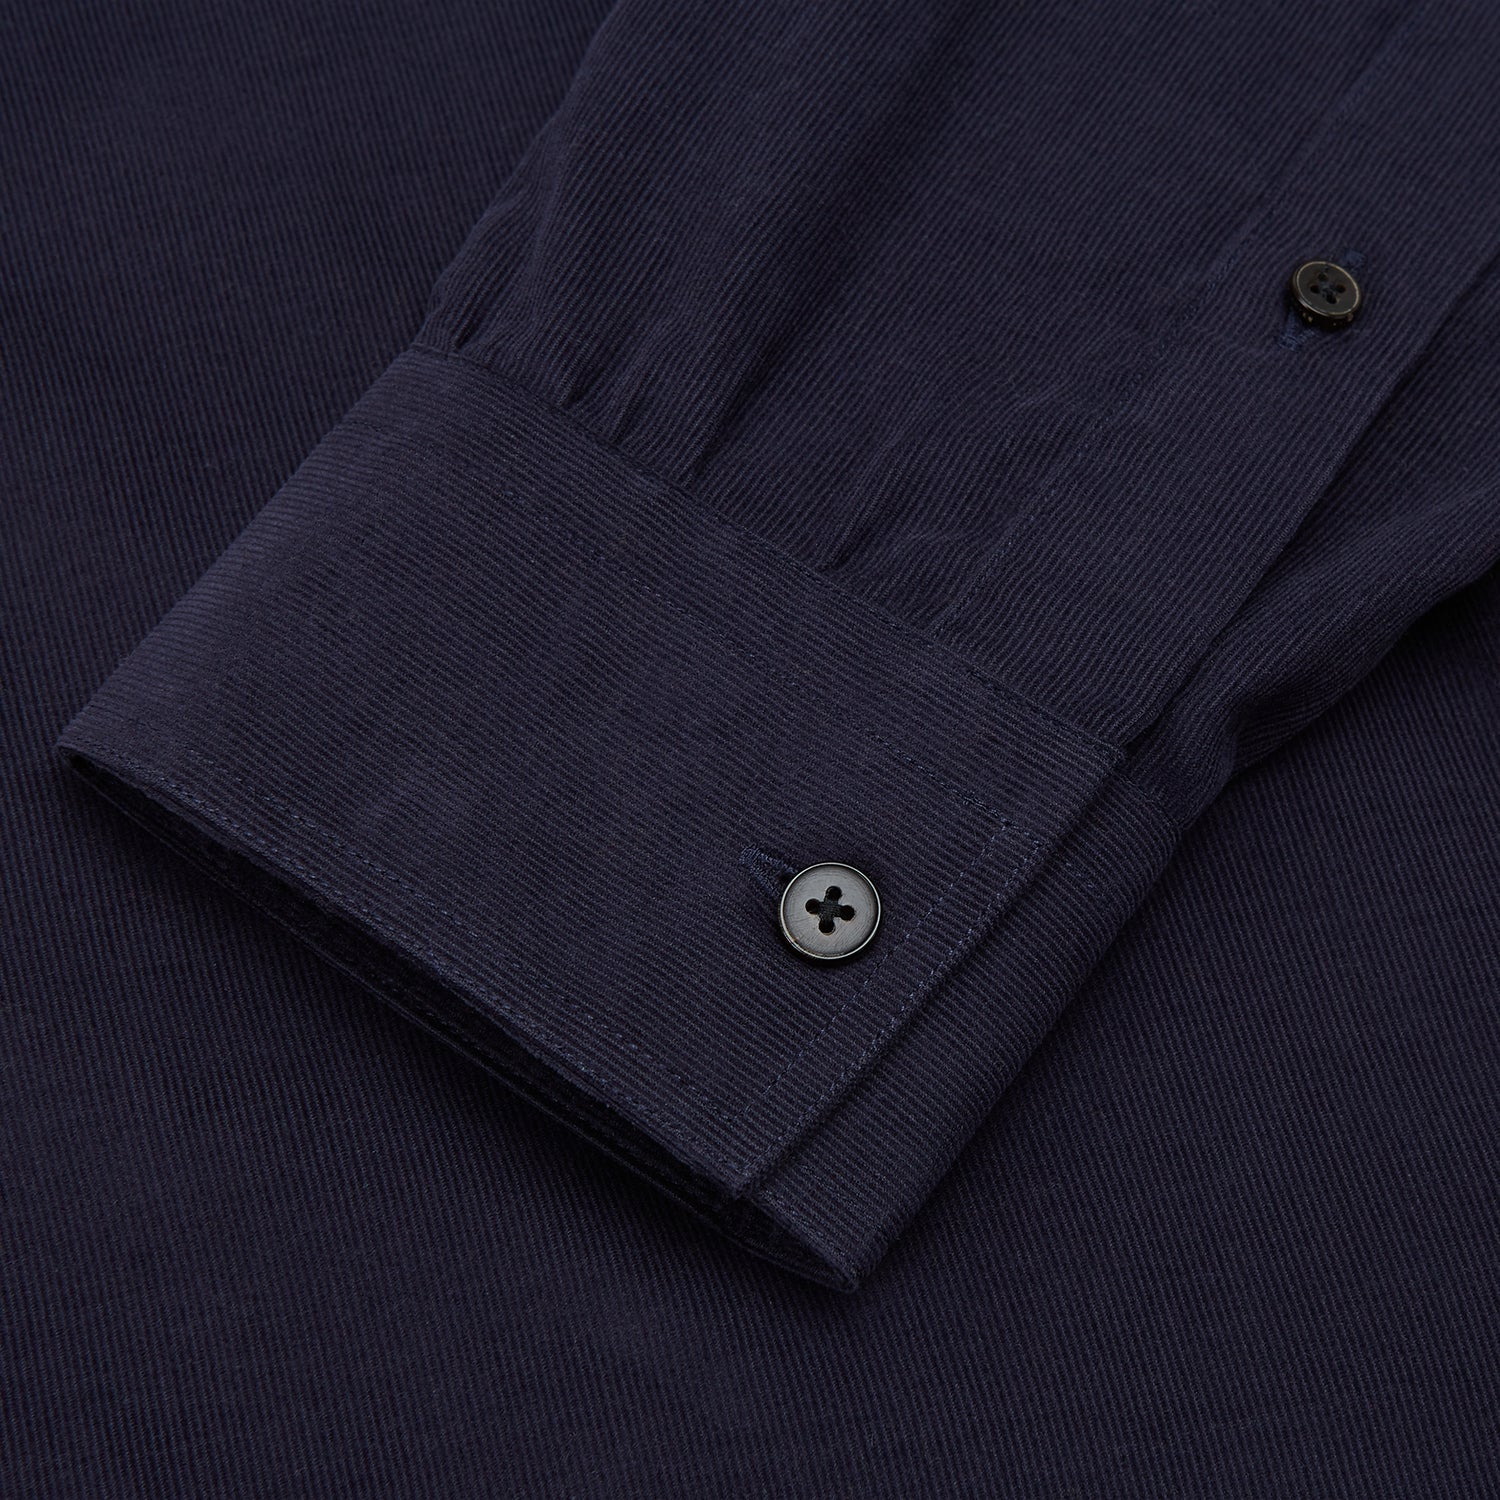 Midnight Blue Corduroy Officer Weekend Fit Shirt with Dorset Collar and 1-Button Cuffs